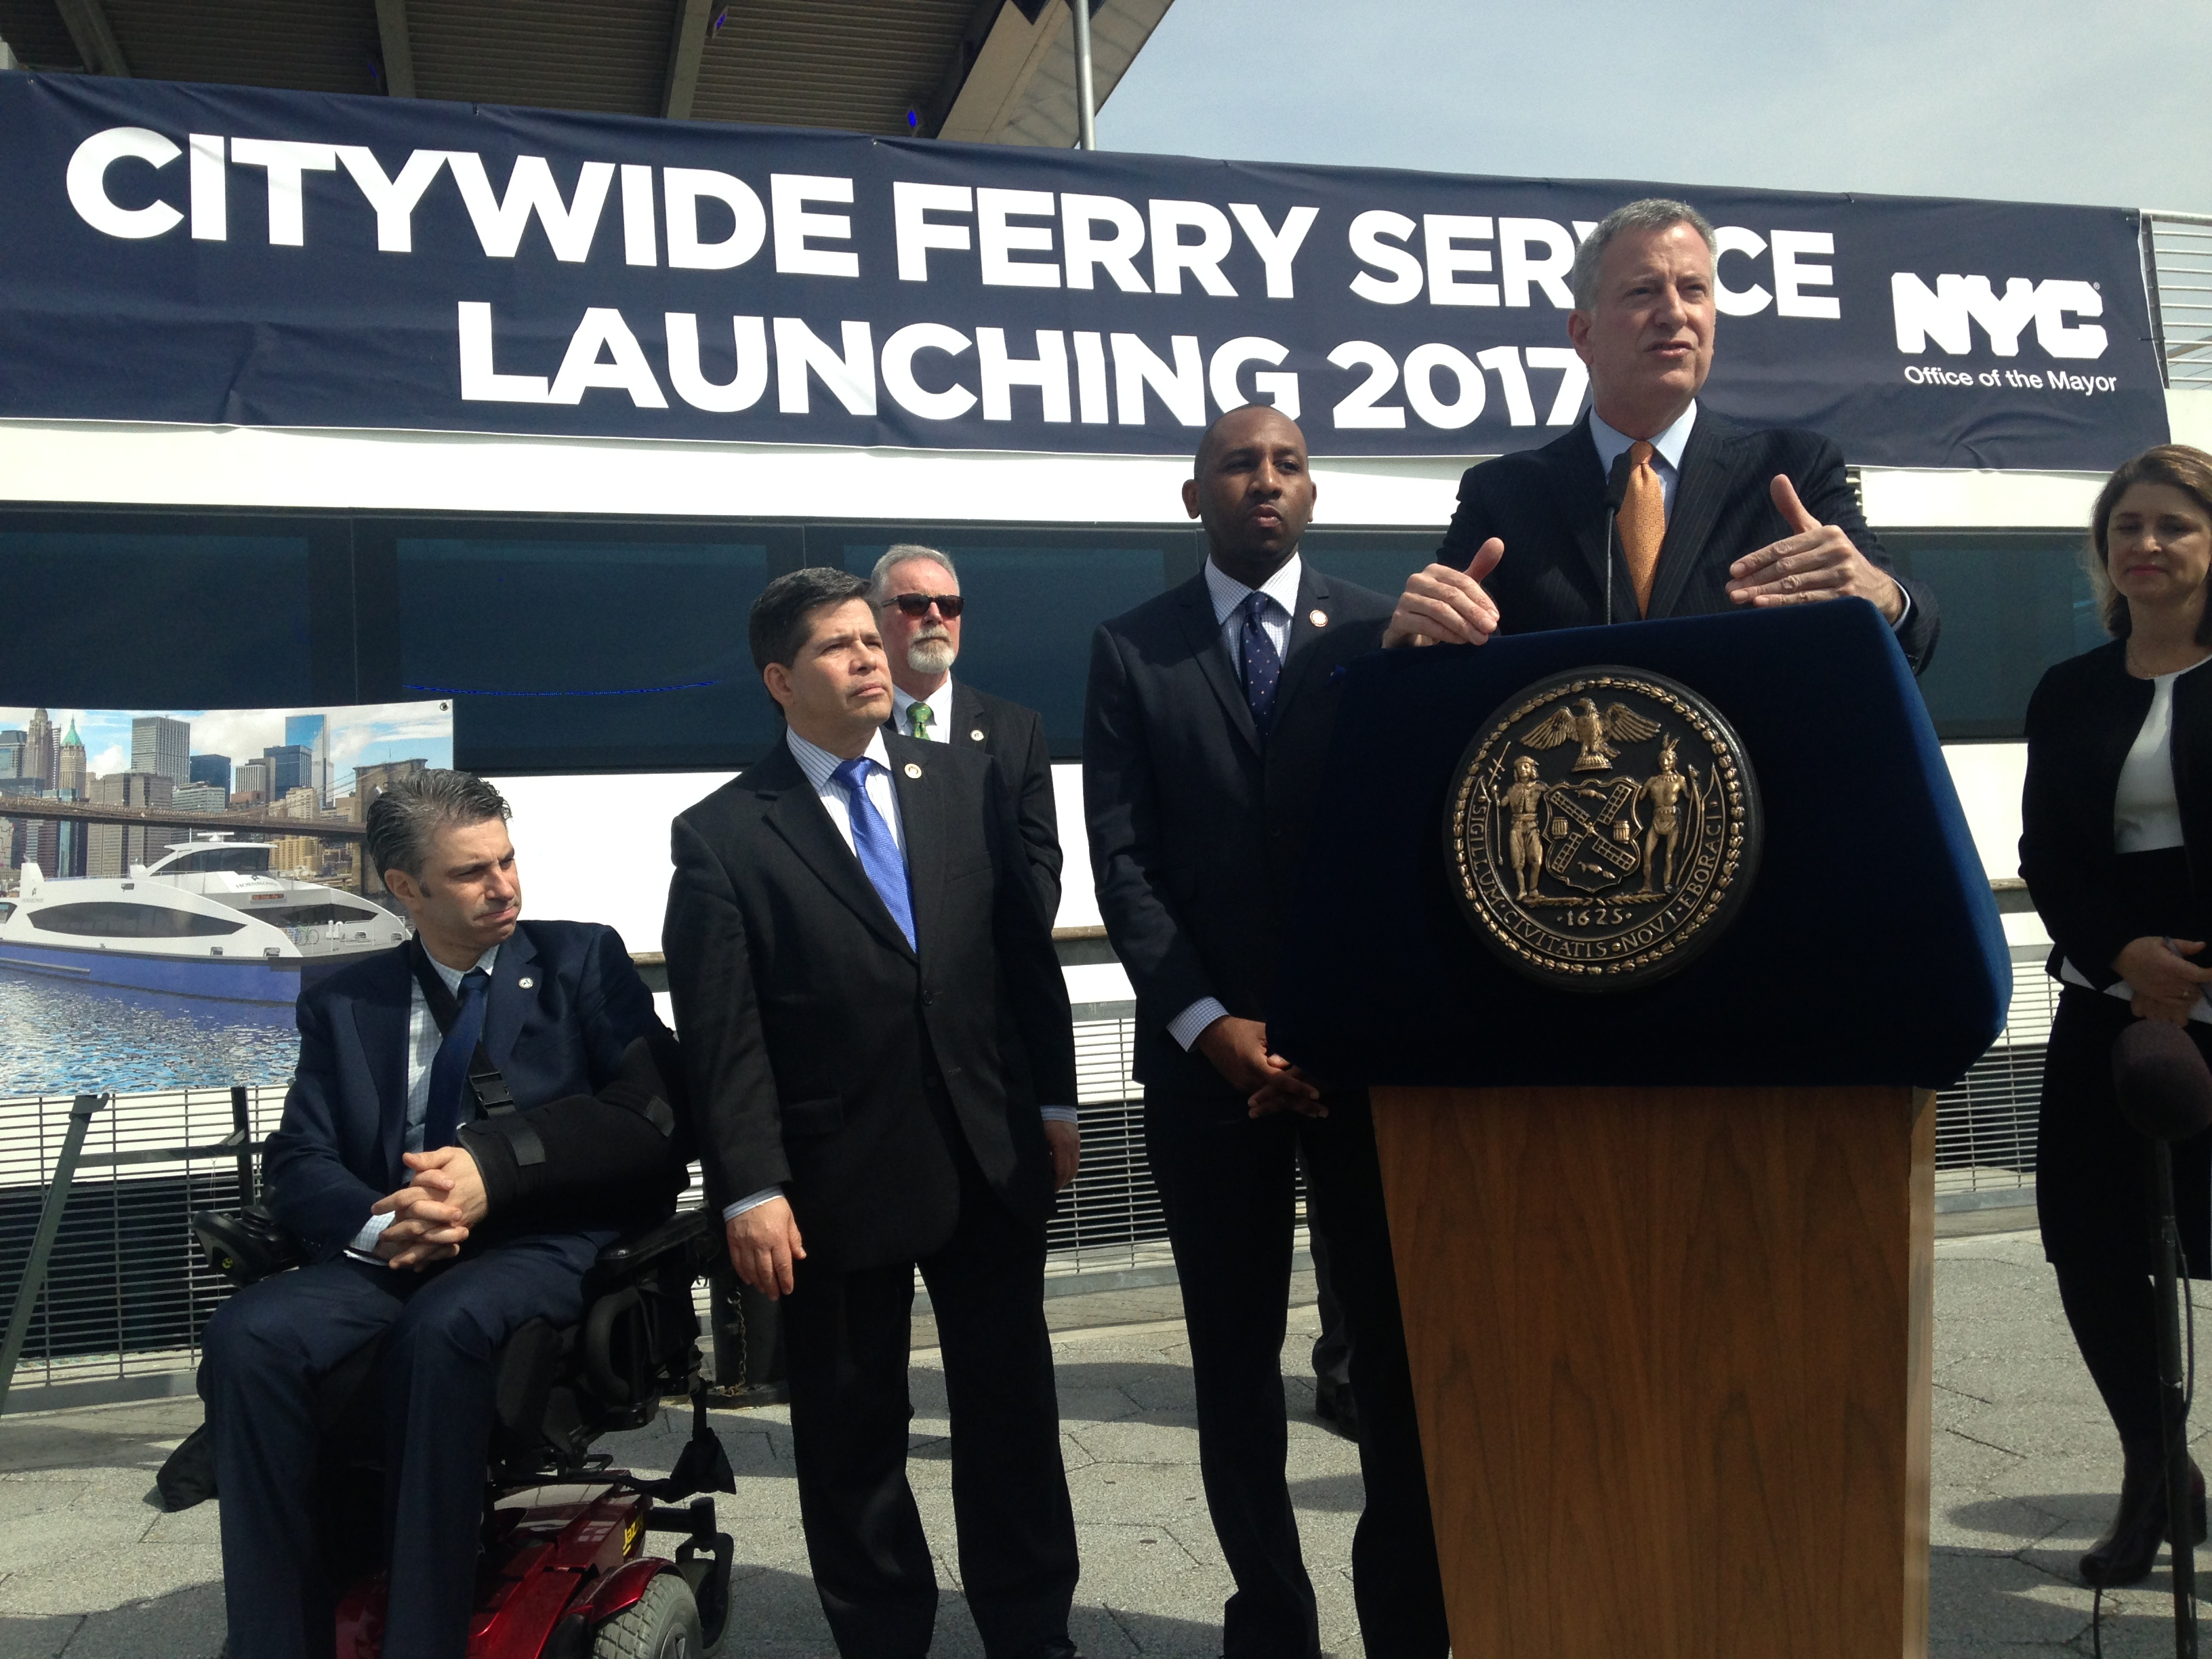 Mayor Bill de Blasio with other city officials.